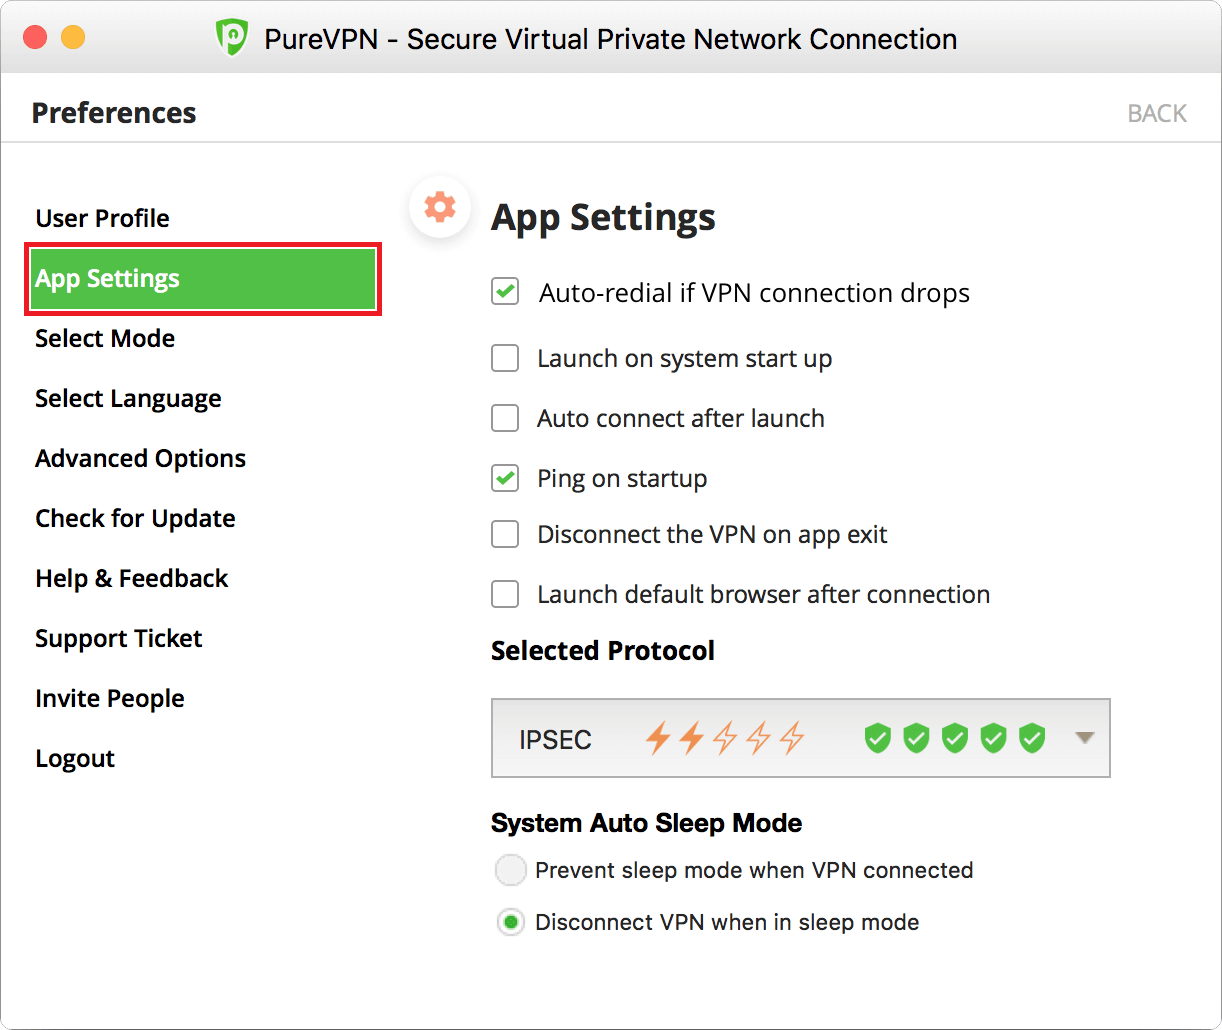 PureVPN App Settings